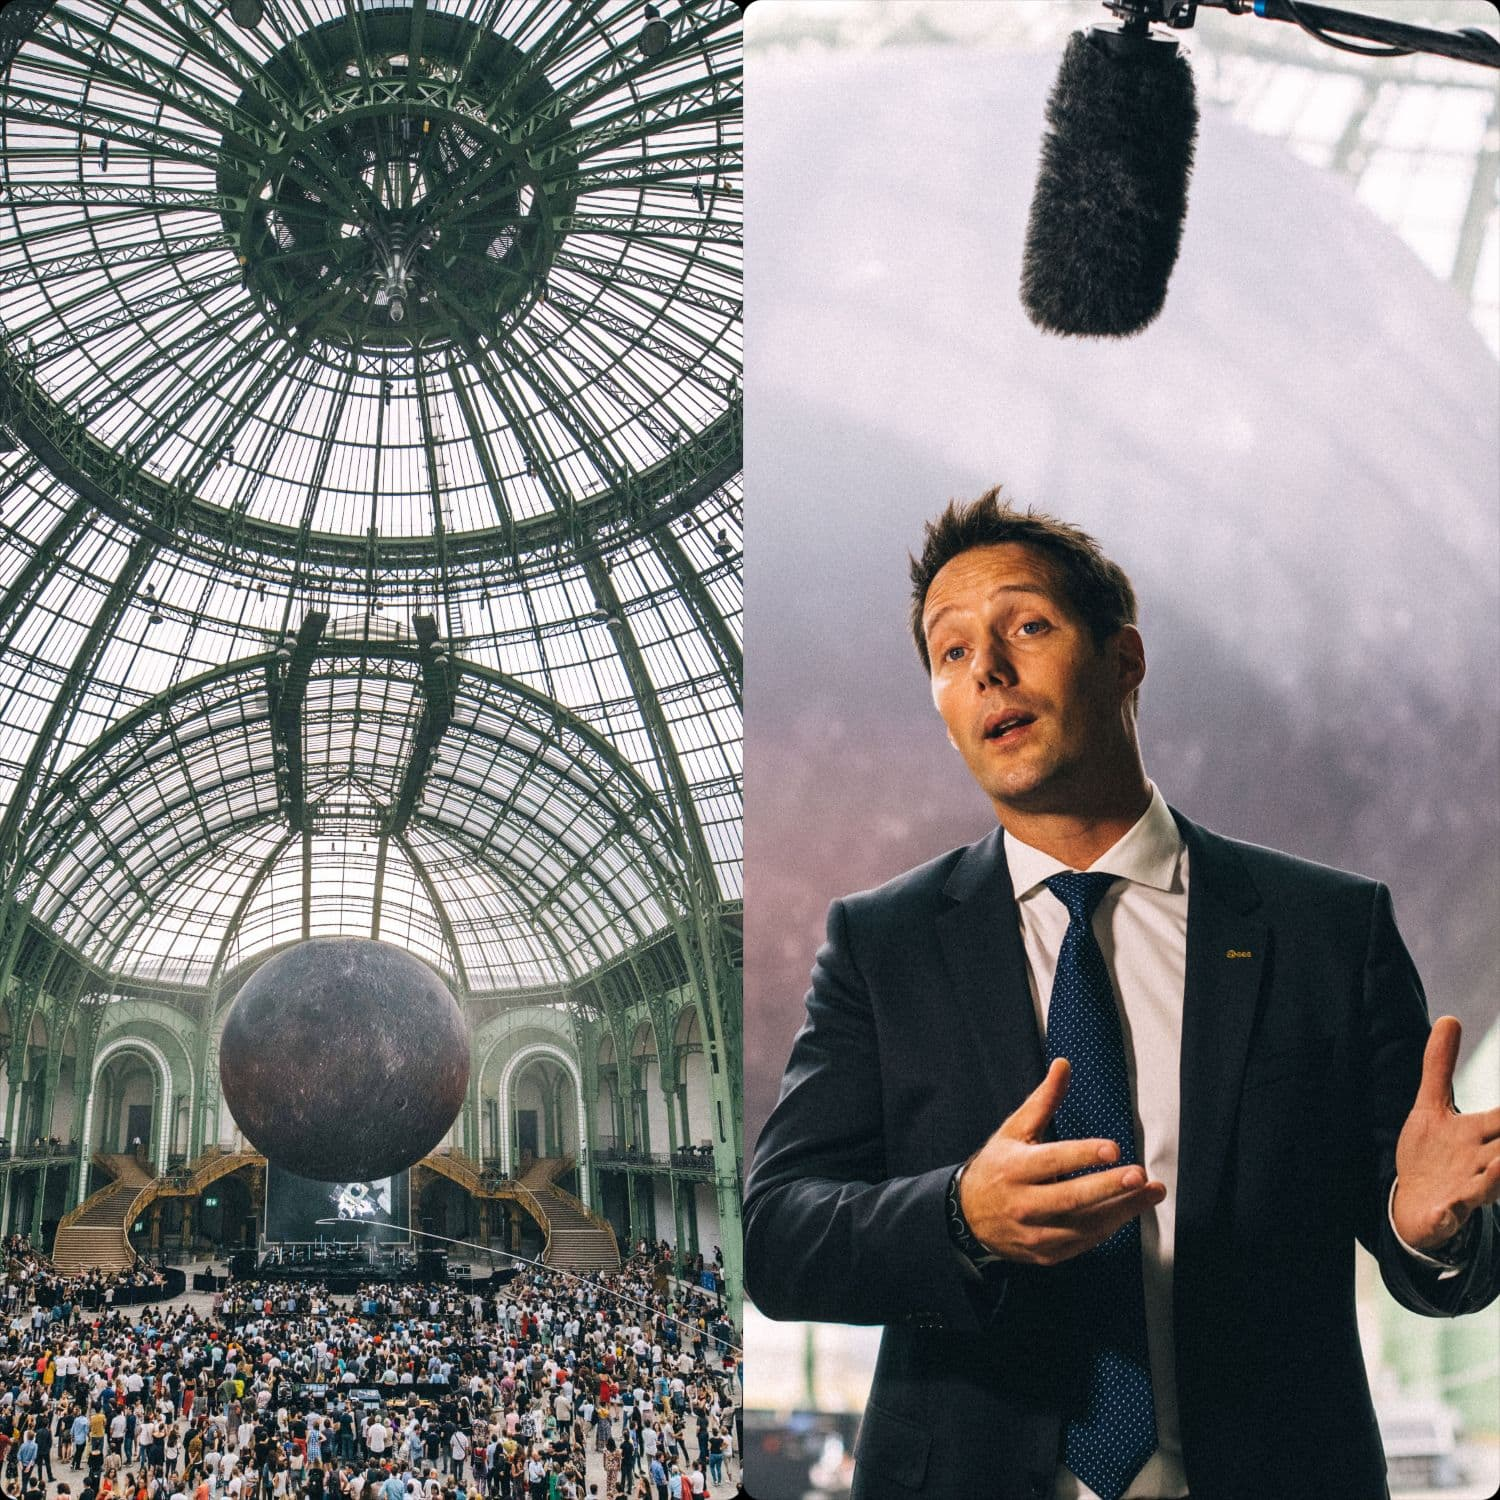 Thomas Pesquet Grand Palais Paris 2019 by Runway Magazine